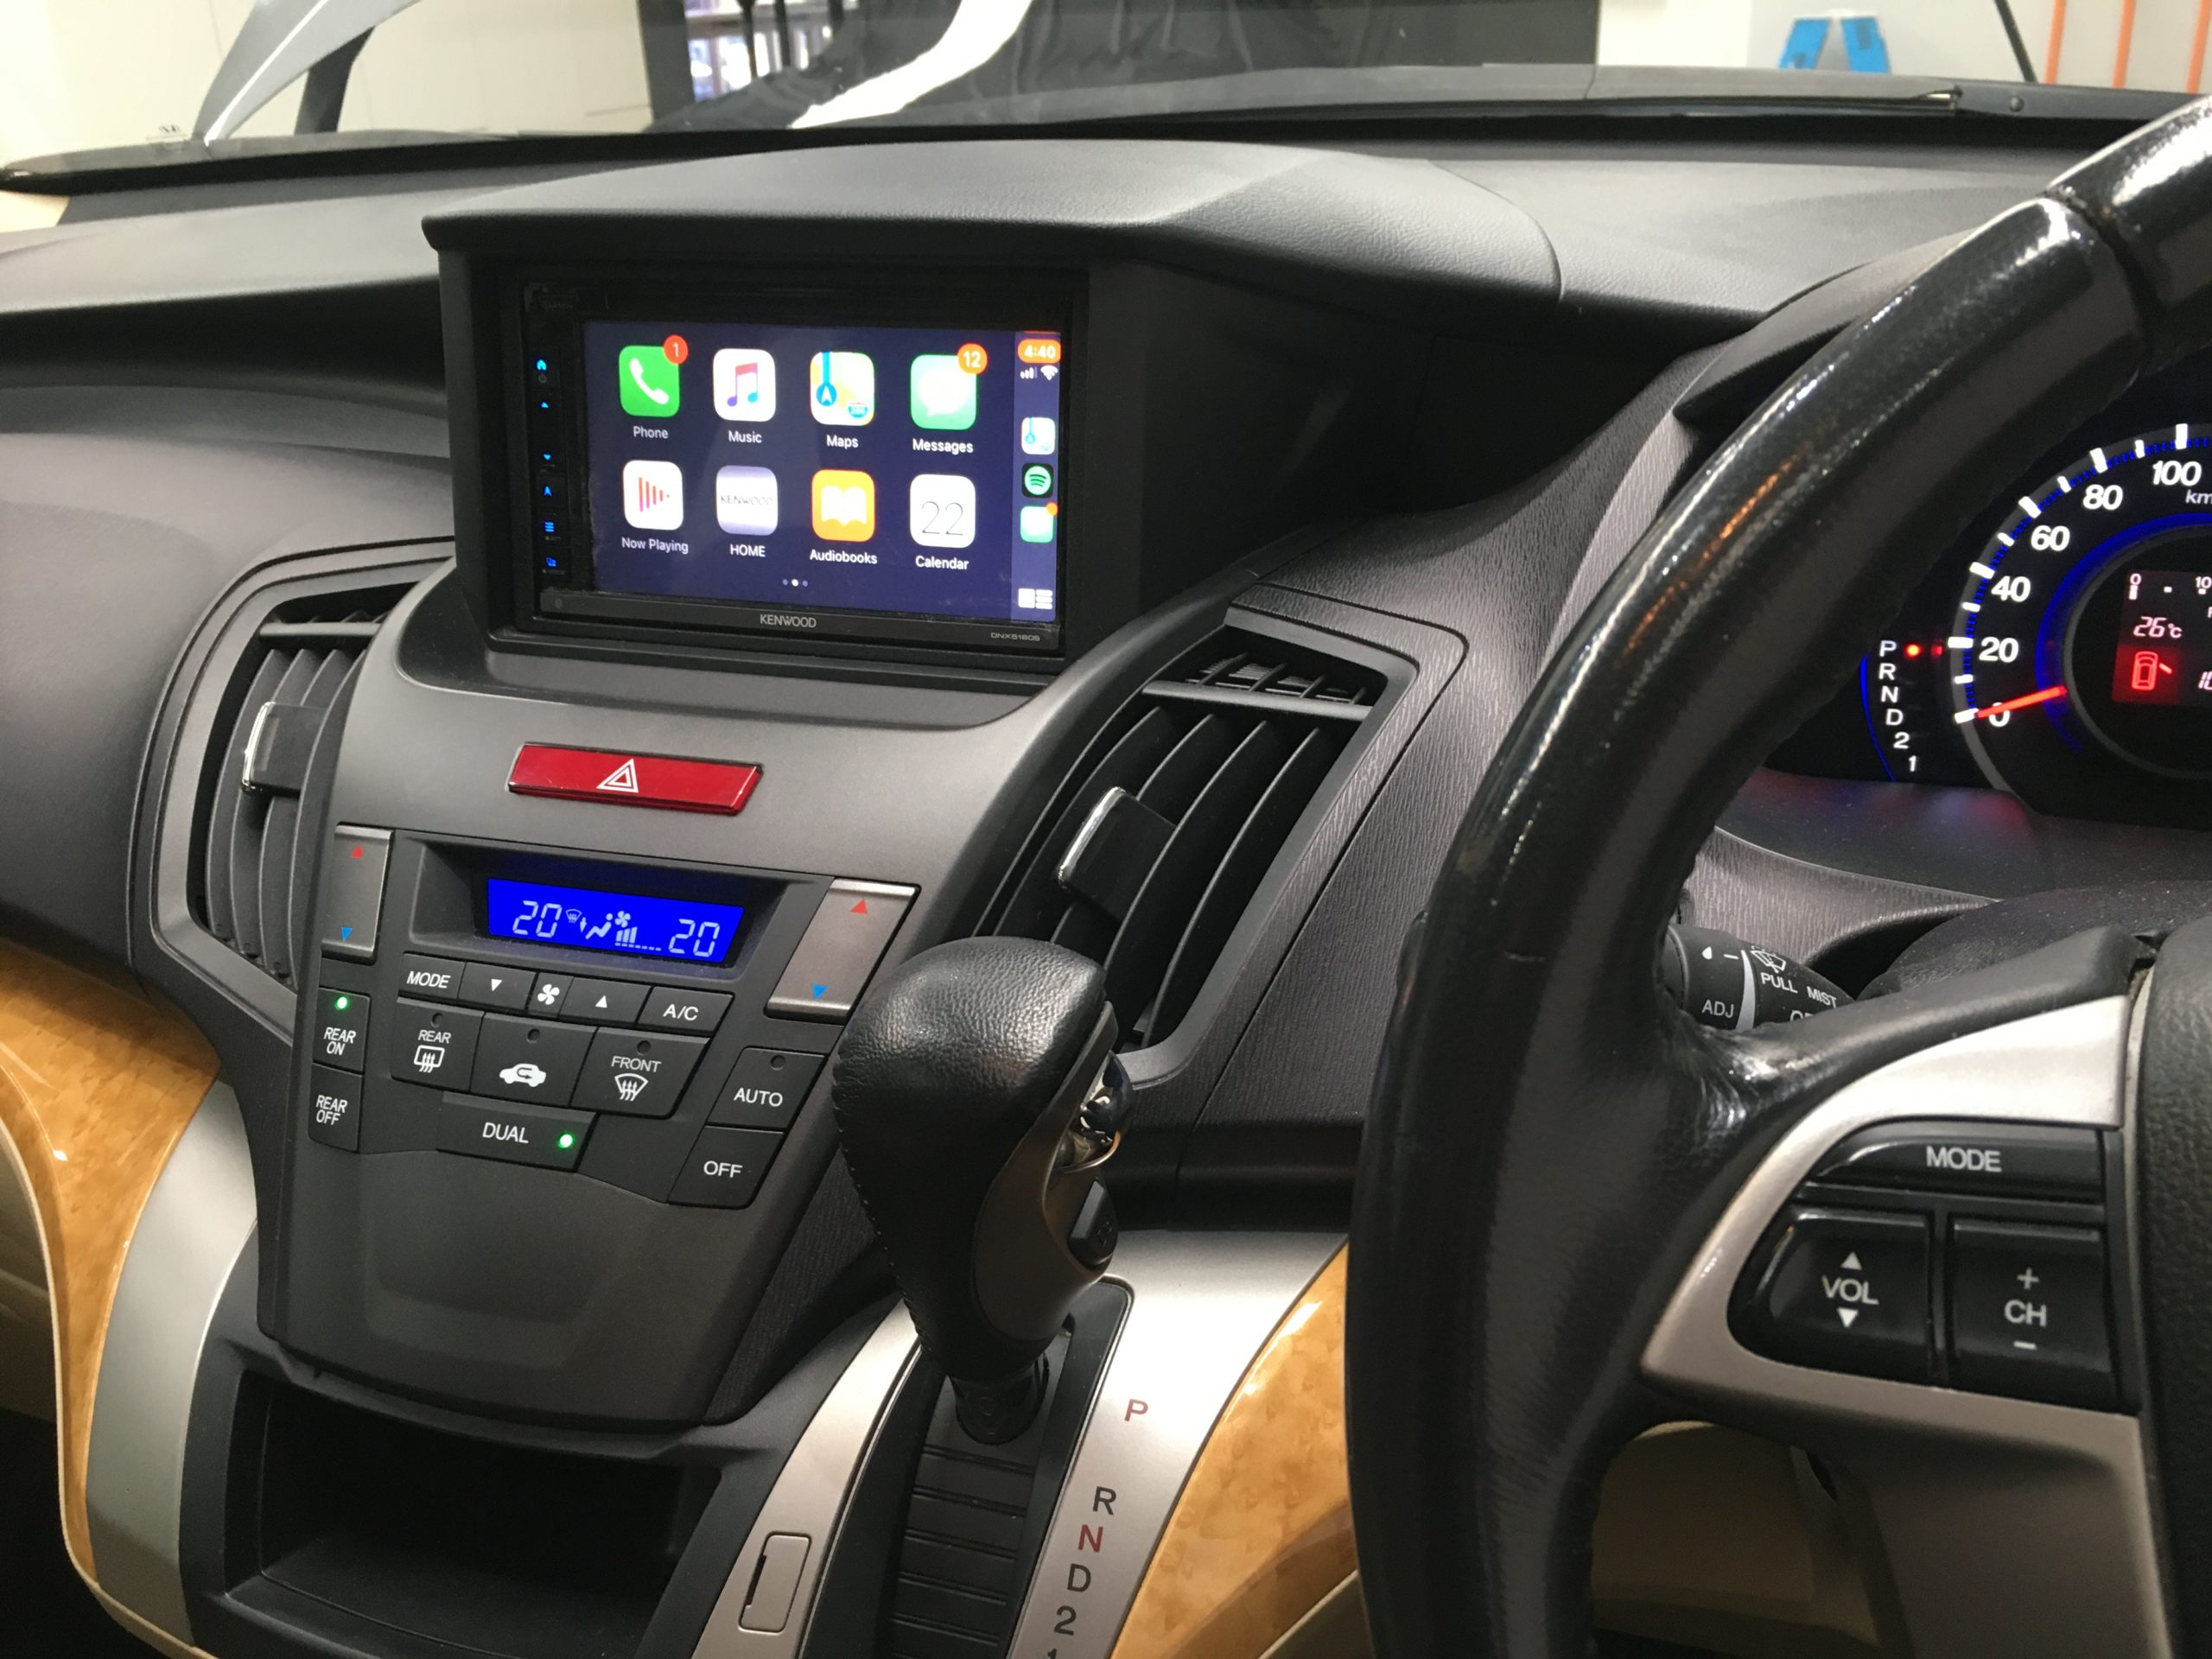 Honda GPS with CarPlay & Android Auto